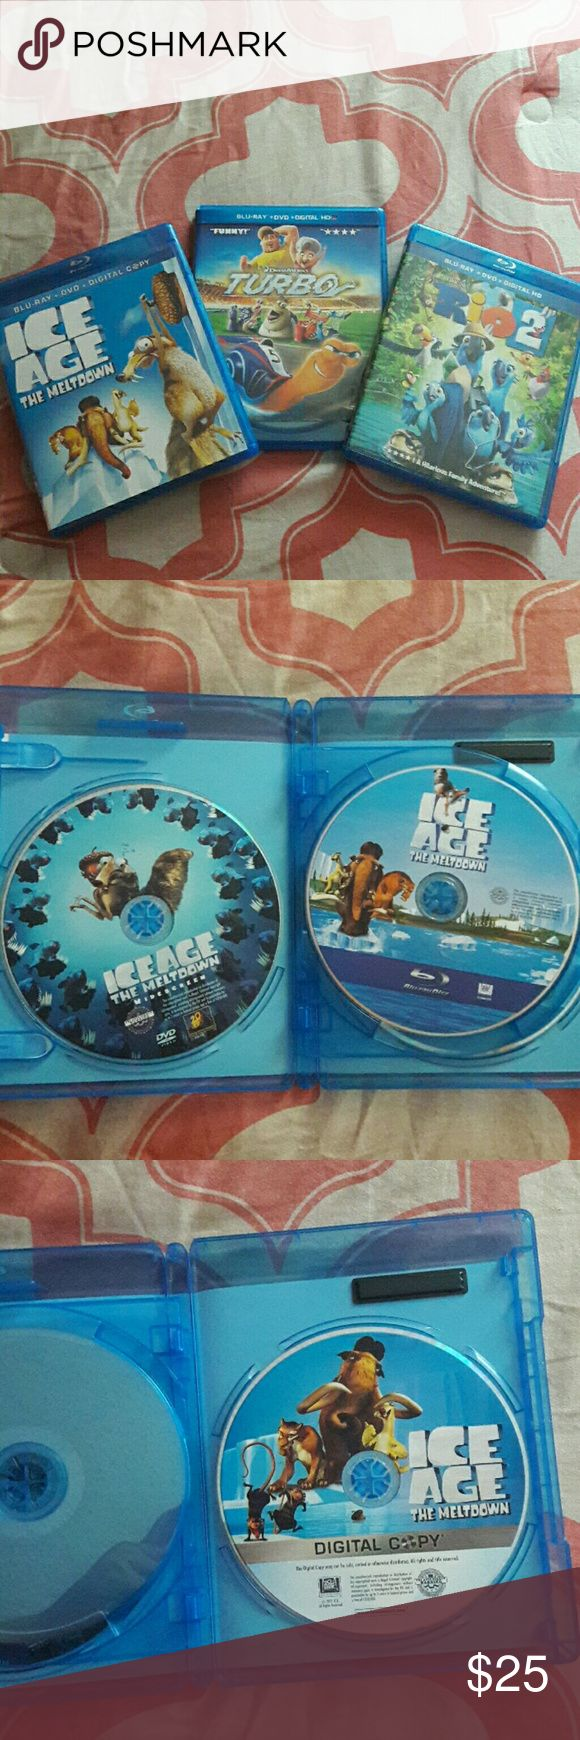 Movies Ice Age The Meltdown, Rio 2, Turbo  BLU-RAY + DVD + DIGITAL HD NO SCRATCHES (SEE PICTURES) CASES LOOK LIKE NEW BlueRayDisc Other